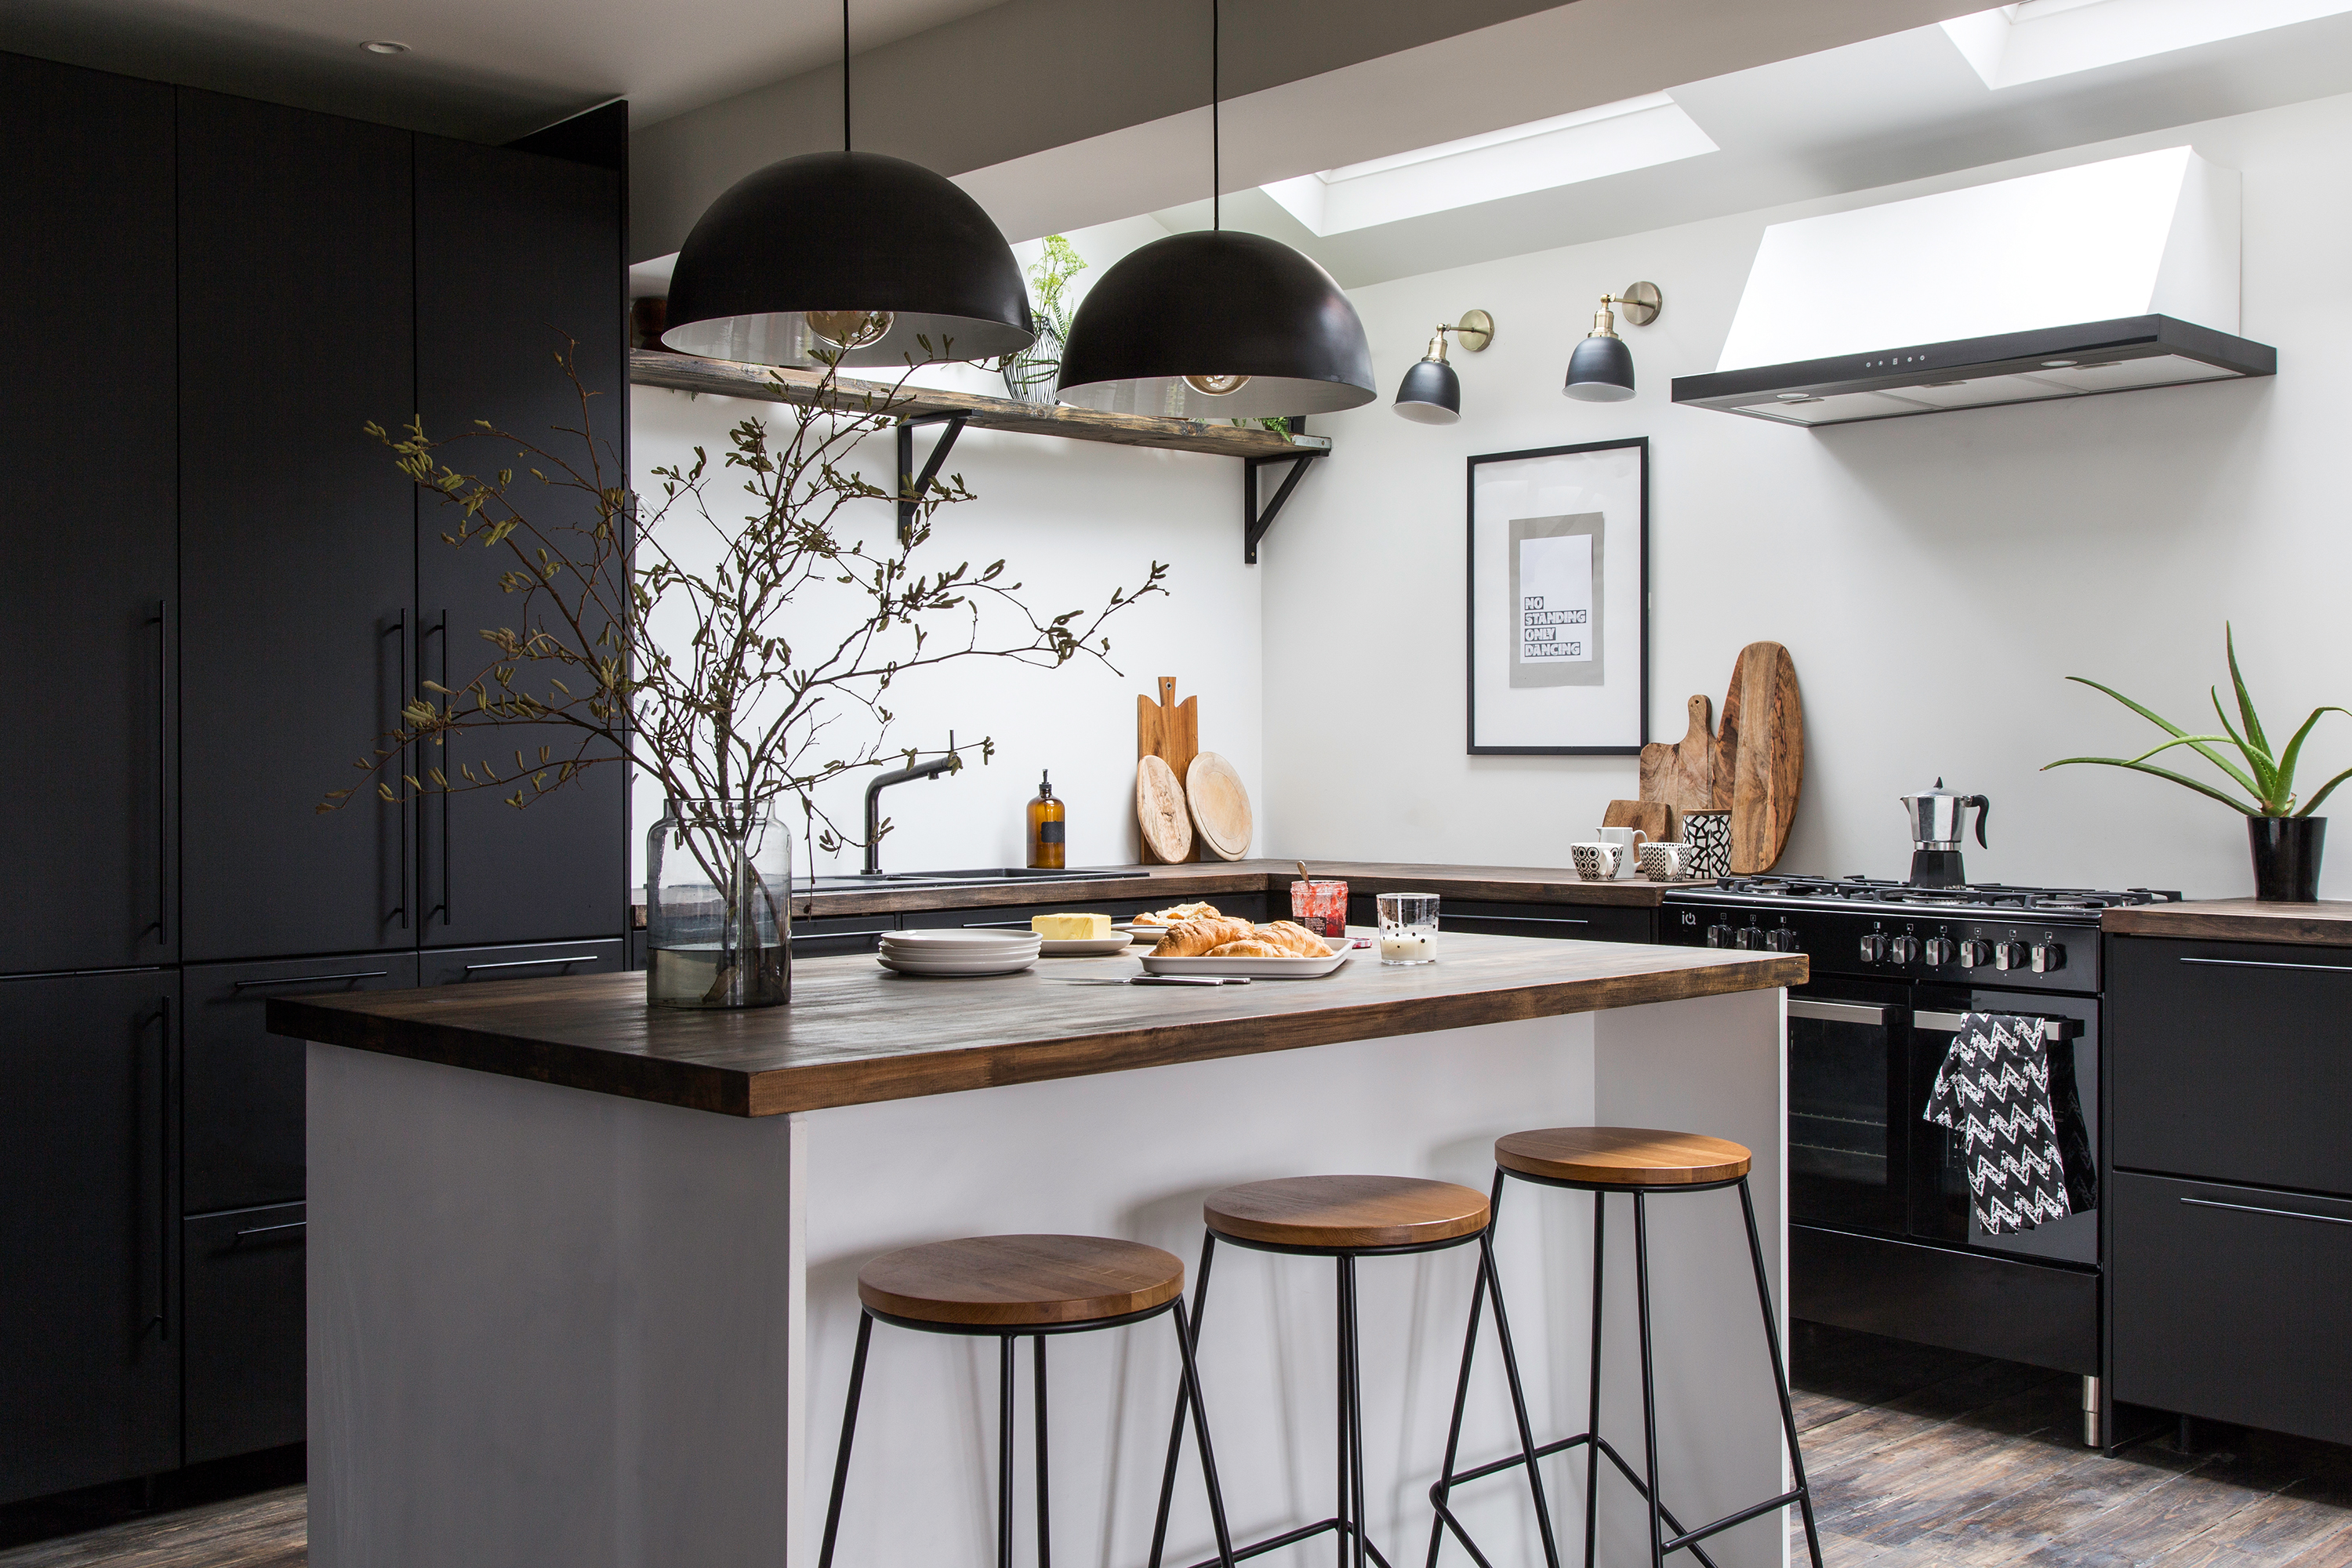 Ikea Kitchen Design Visit Kitchens On A Budget 16 Ways To Design A Stylish Space Real Homes